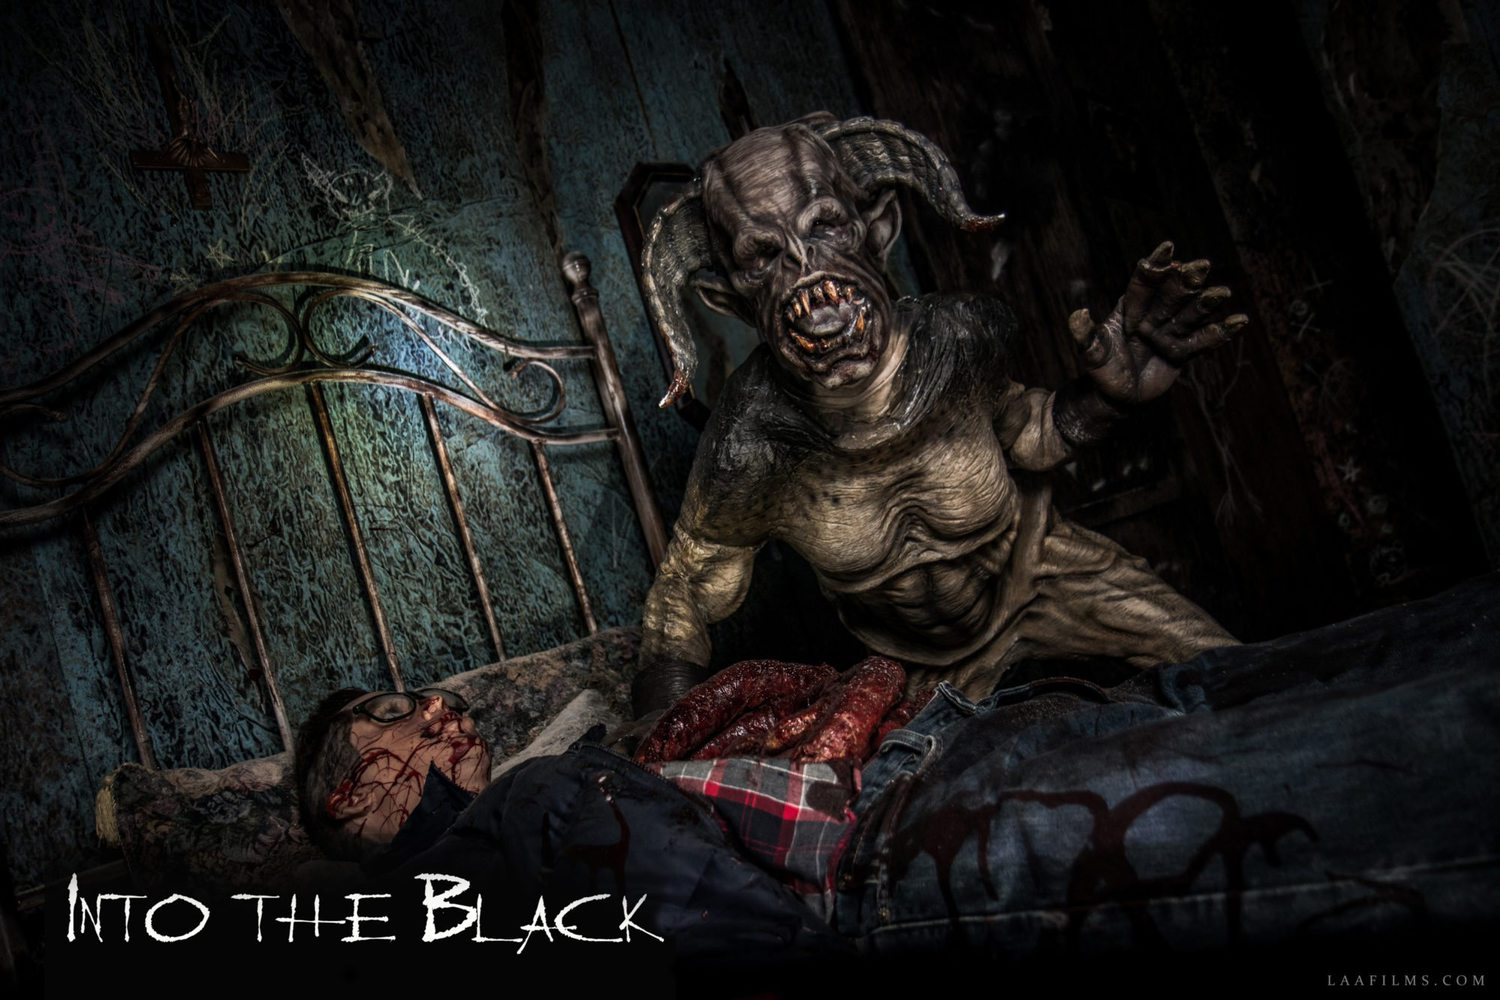 Into the Black VR Immersive horror haunted house experience - Larry Bones